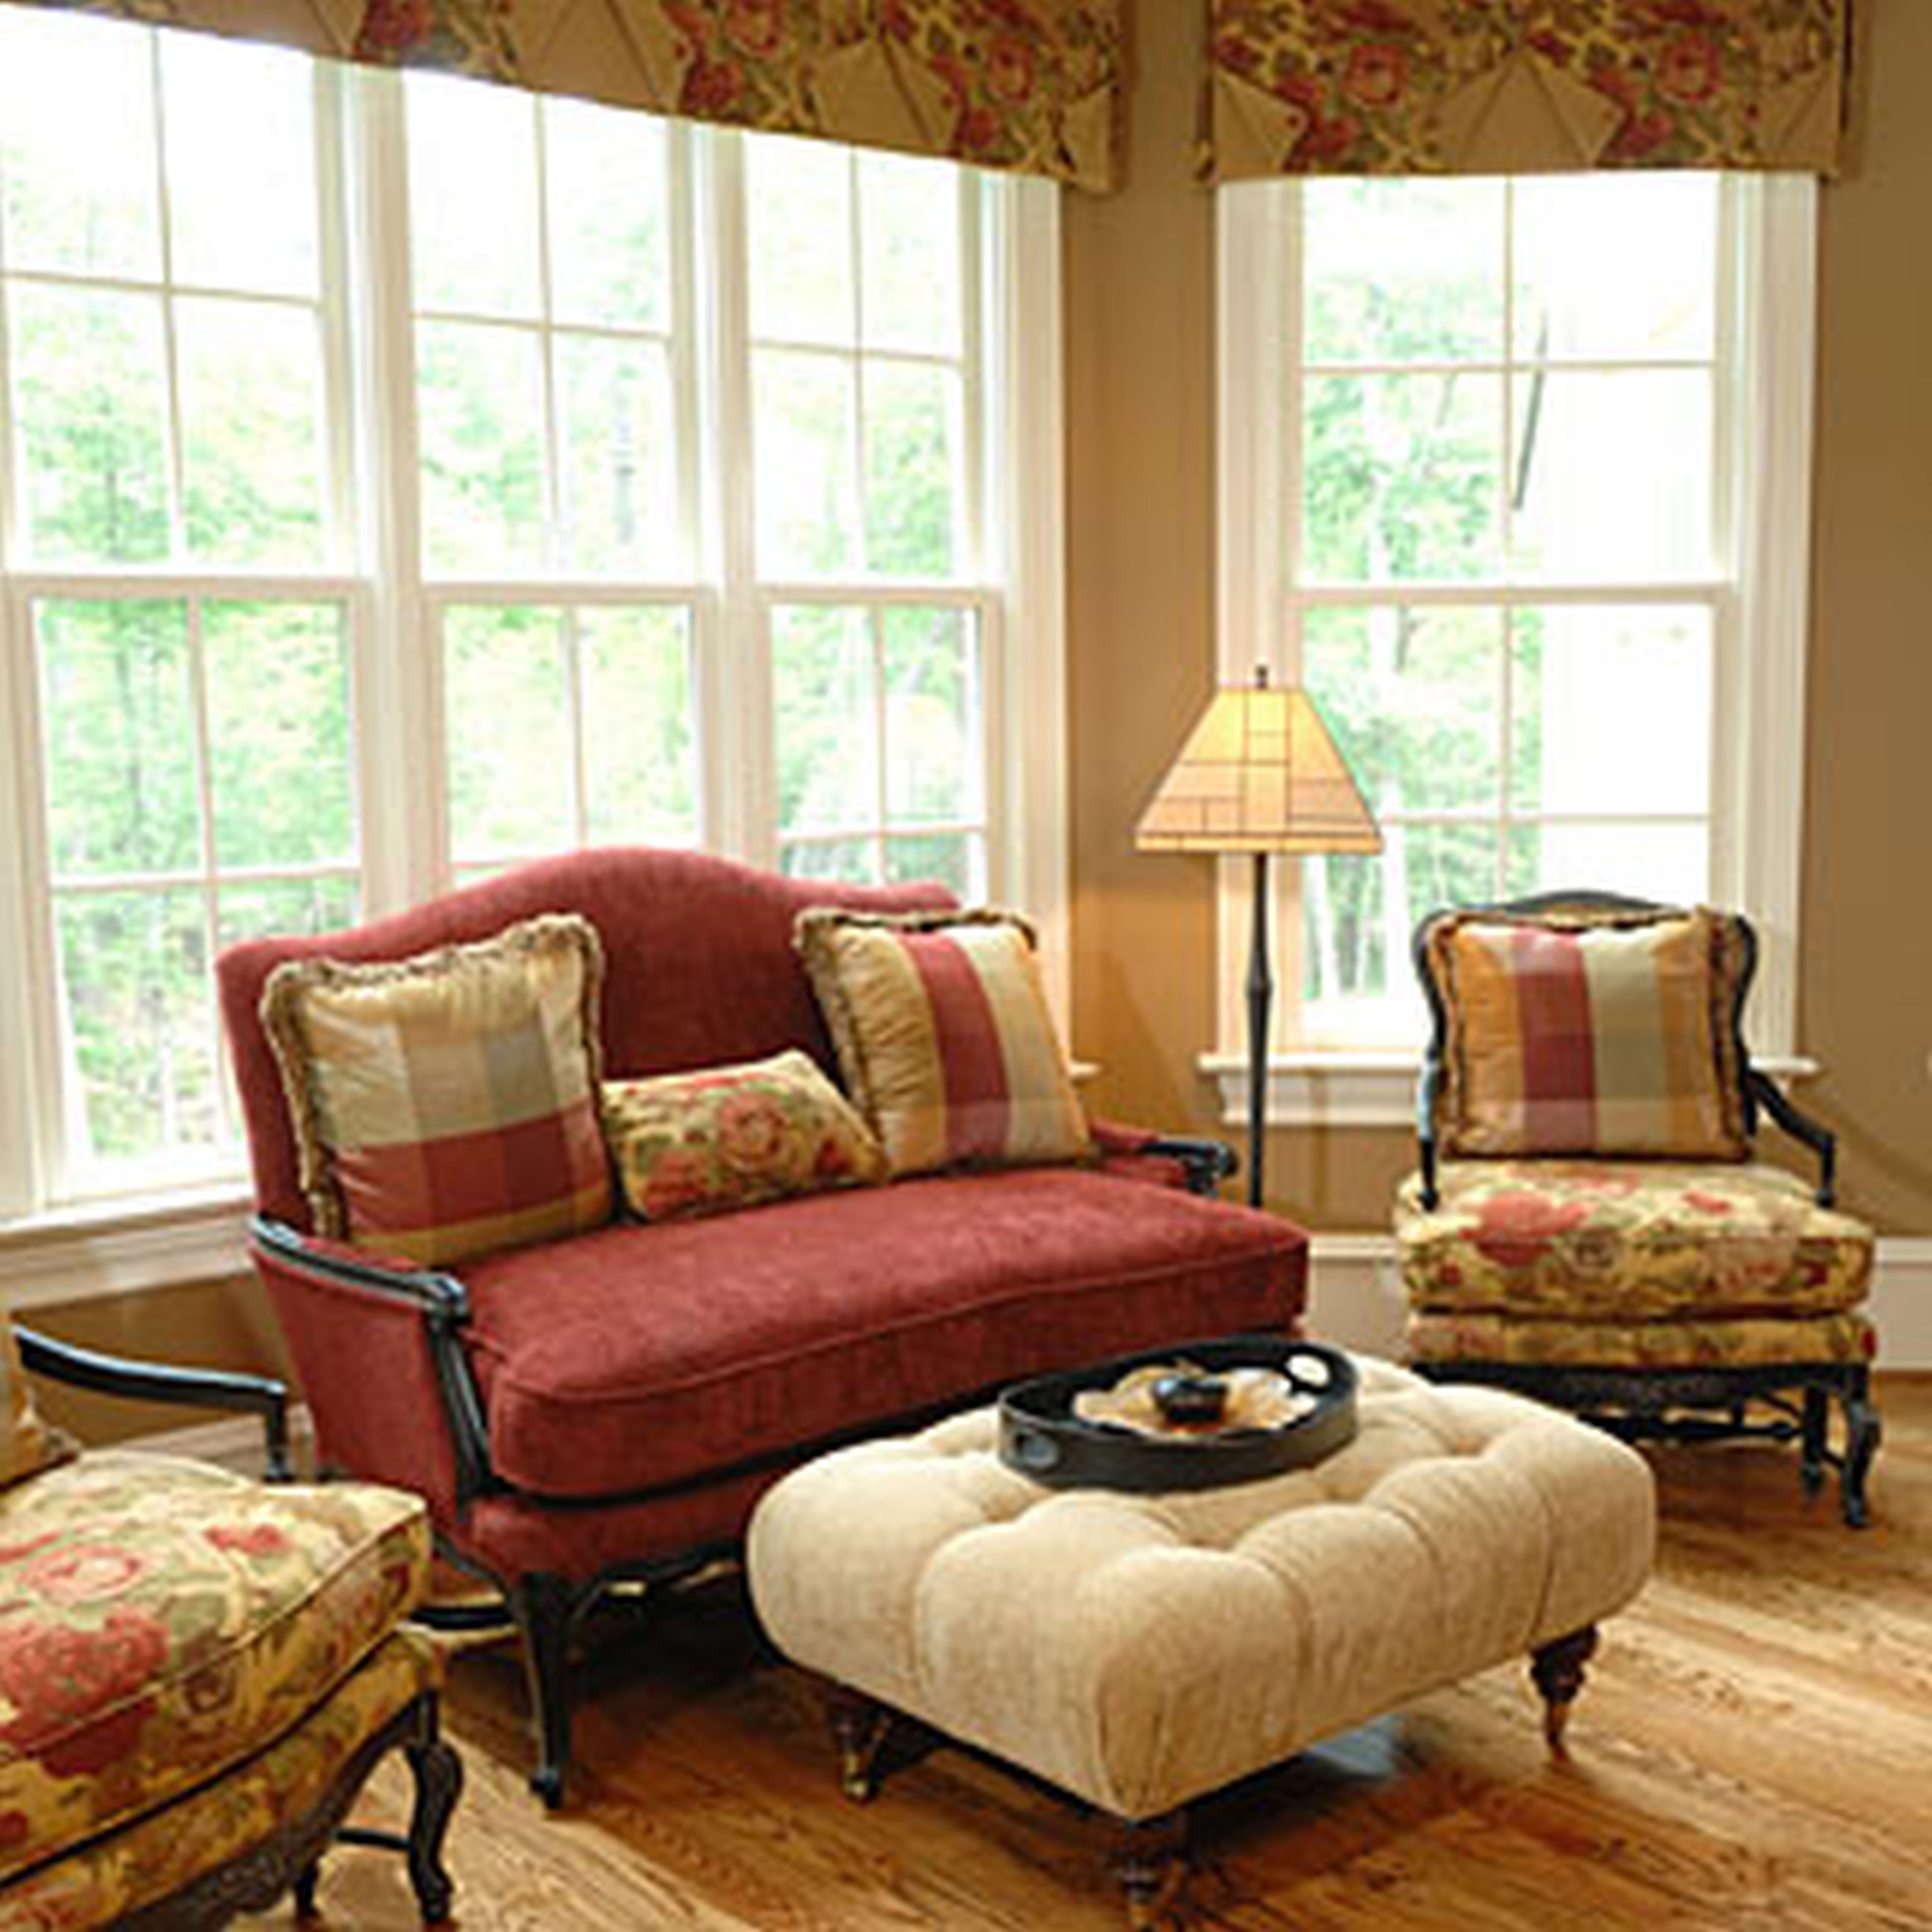 30 Cozy Home Decor Ideas For Your Home - The WoW Style on Decor For Room  id=46099